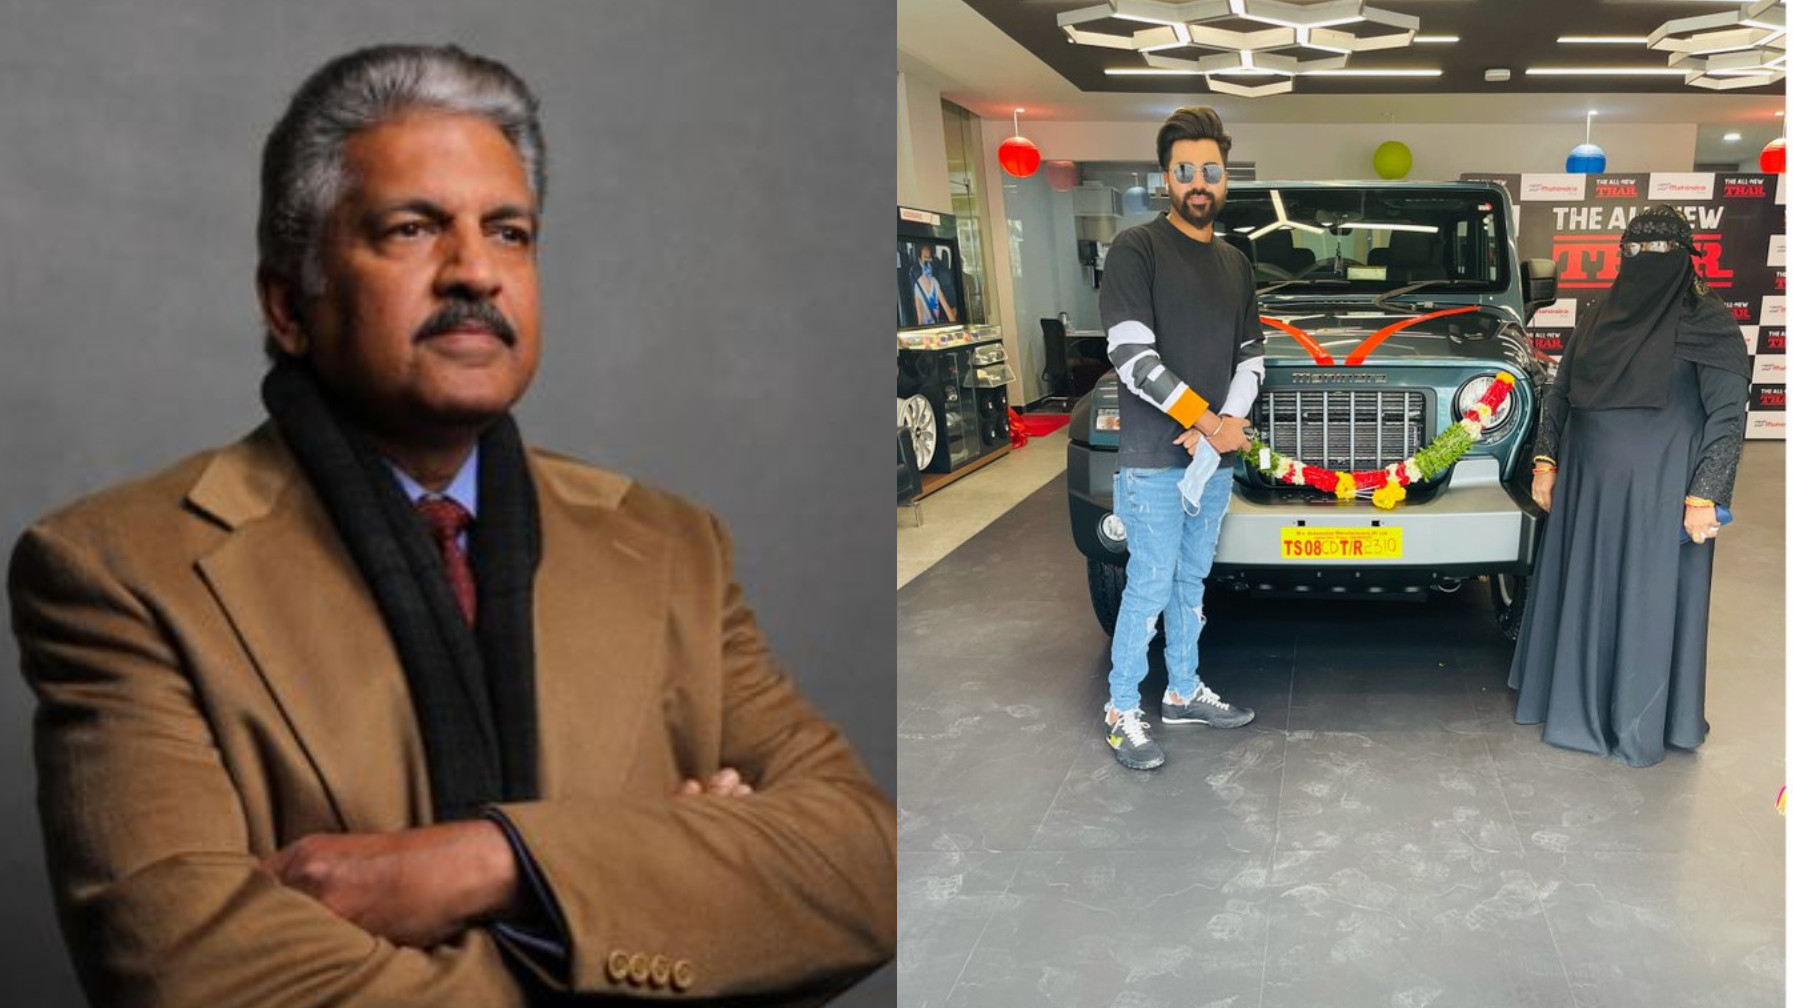 Mohammed Siraj says 'a big fat thank you' to Anand Mahindra for his gift of Mahindra Thar SUV